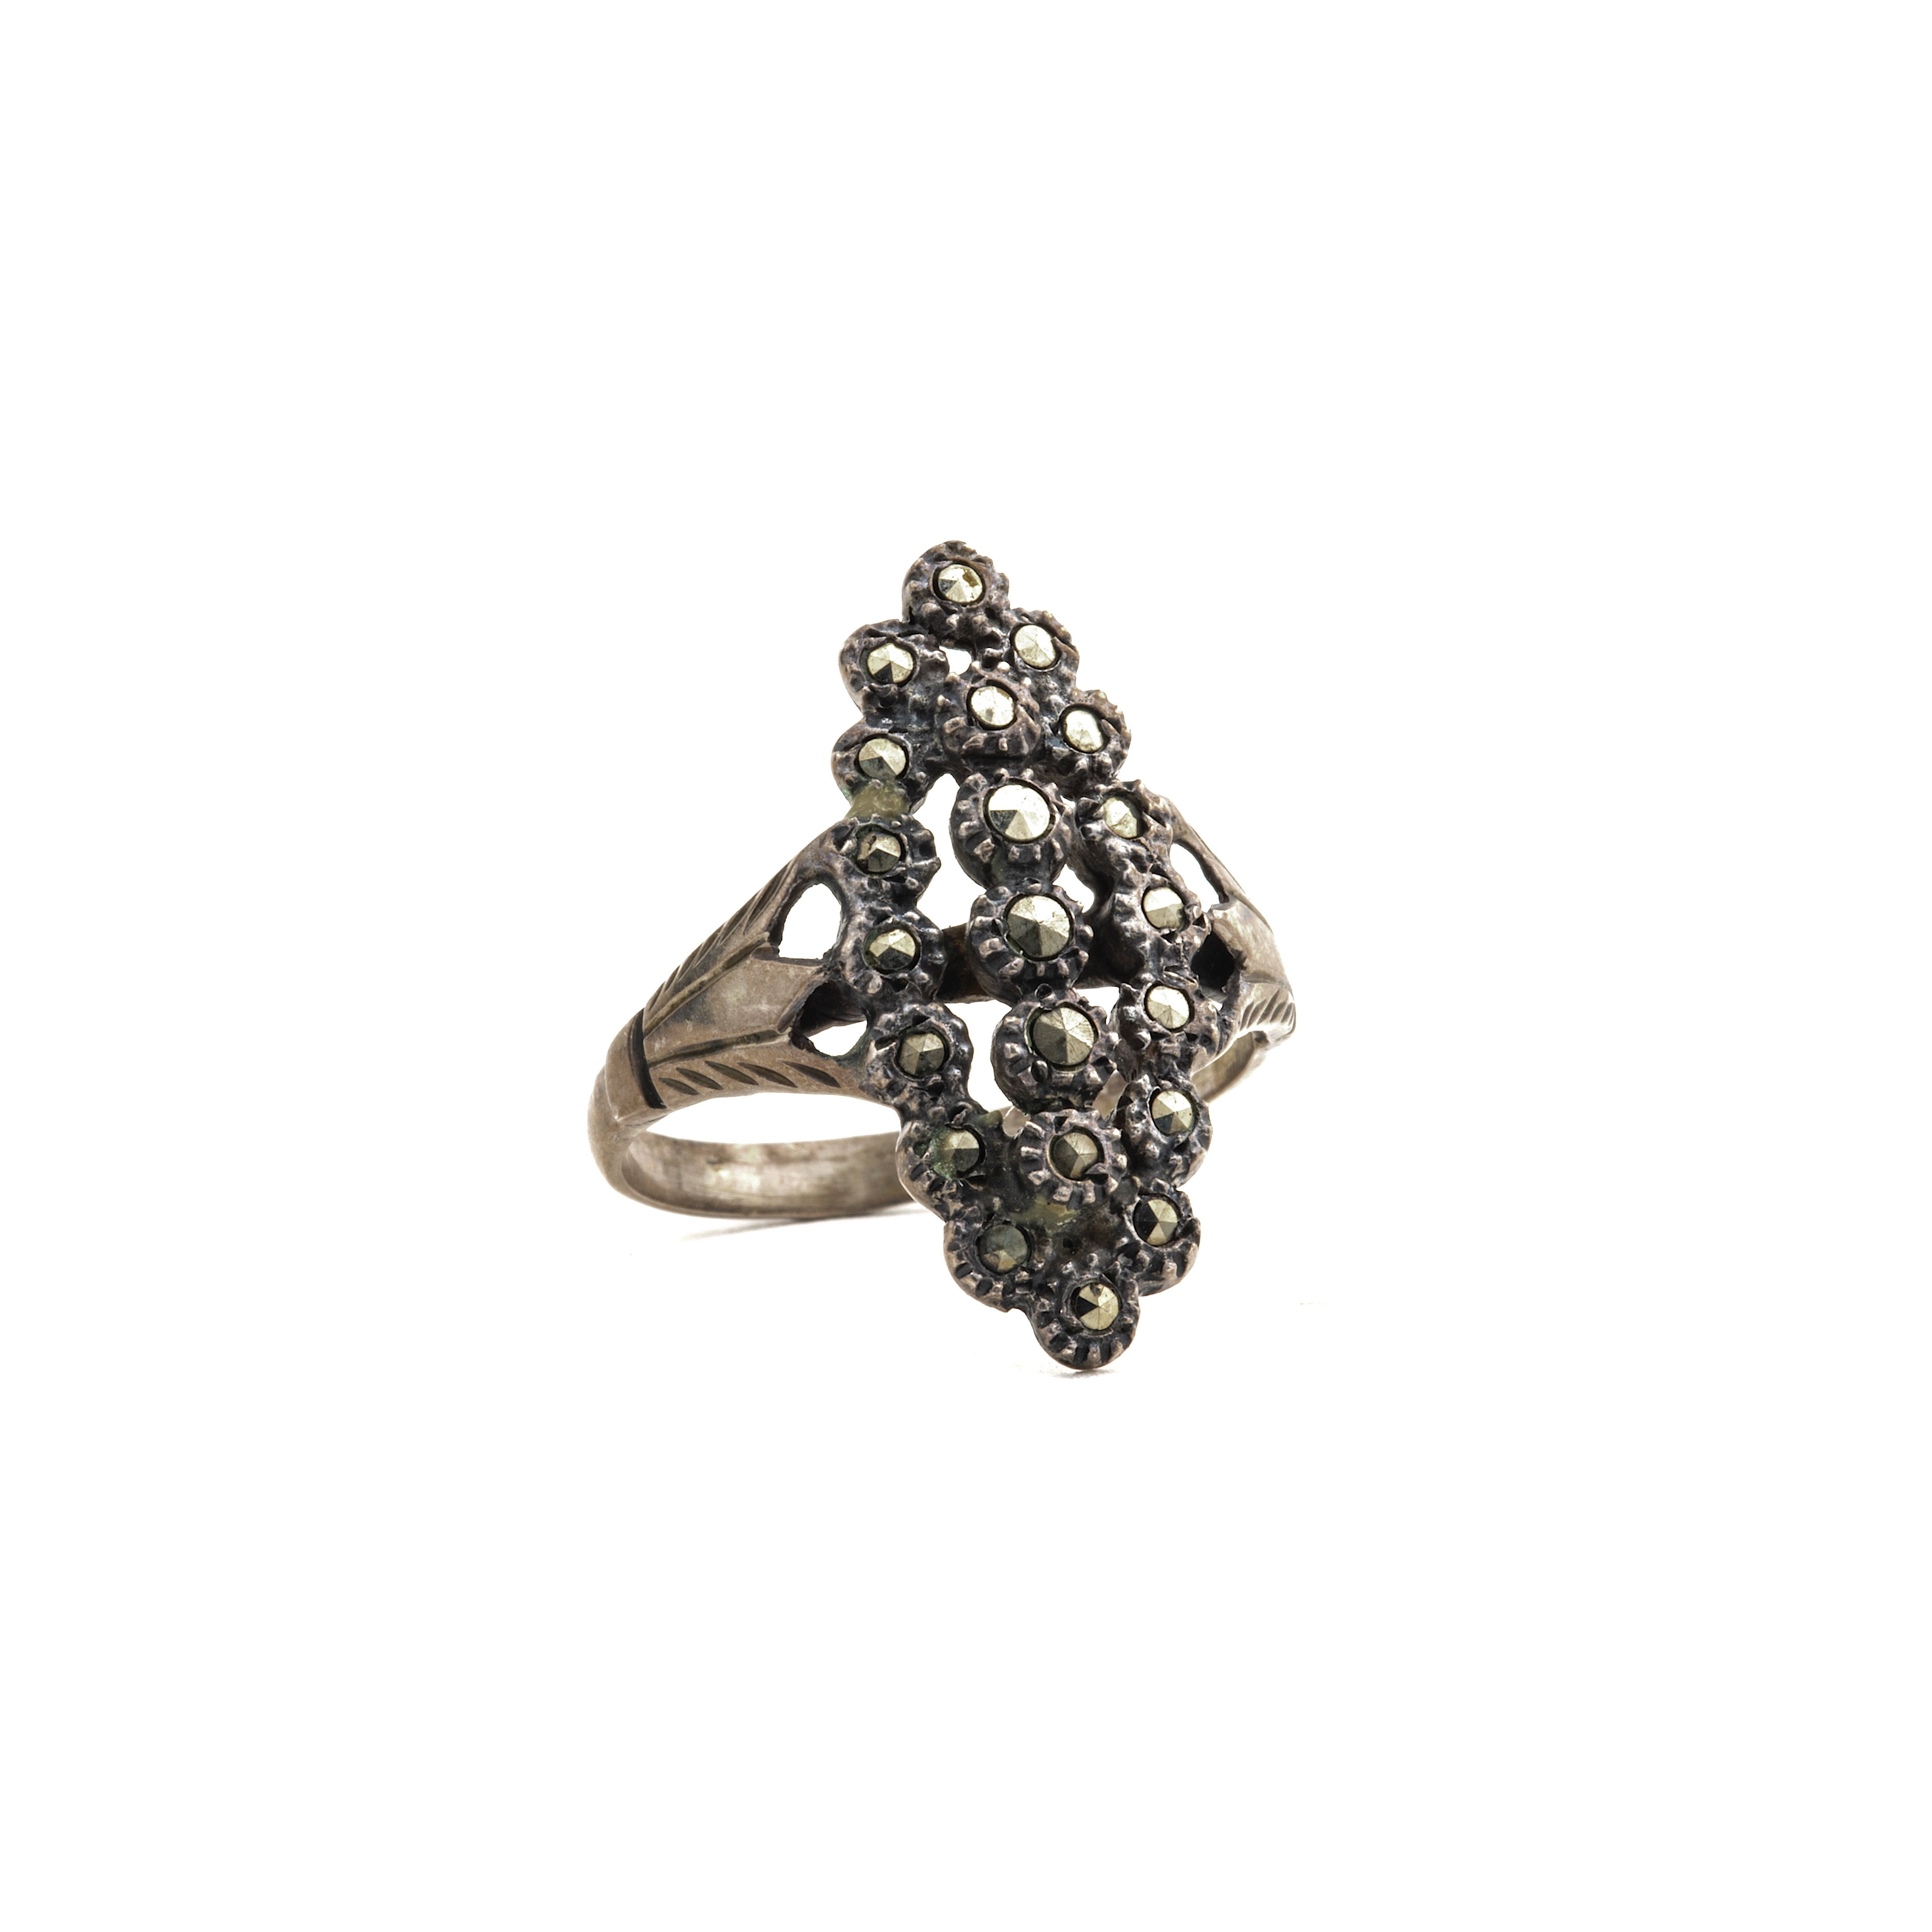 MARCASITE RING VINTAGE 925 Sterling silver marcasite jewelry victorian ring Armenian jewelry royal ring black stone Christmas gift sale ring